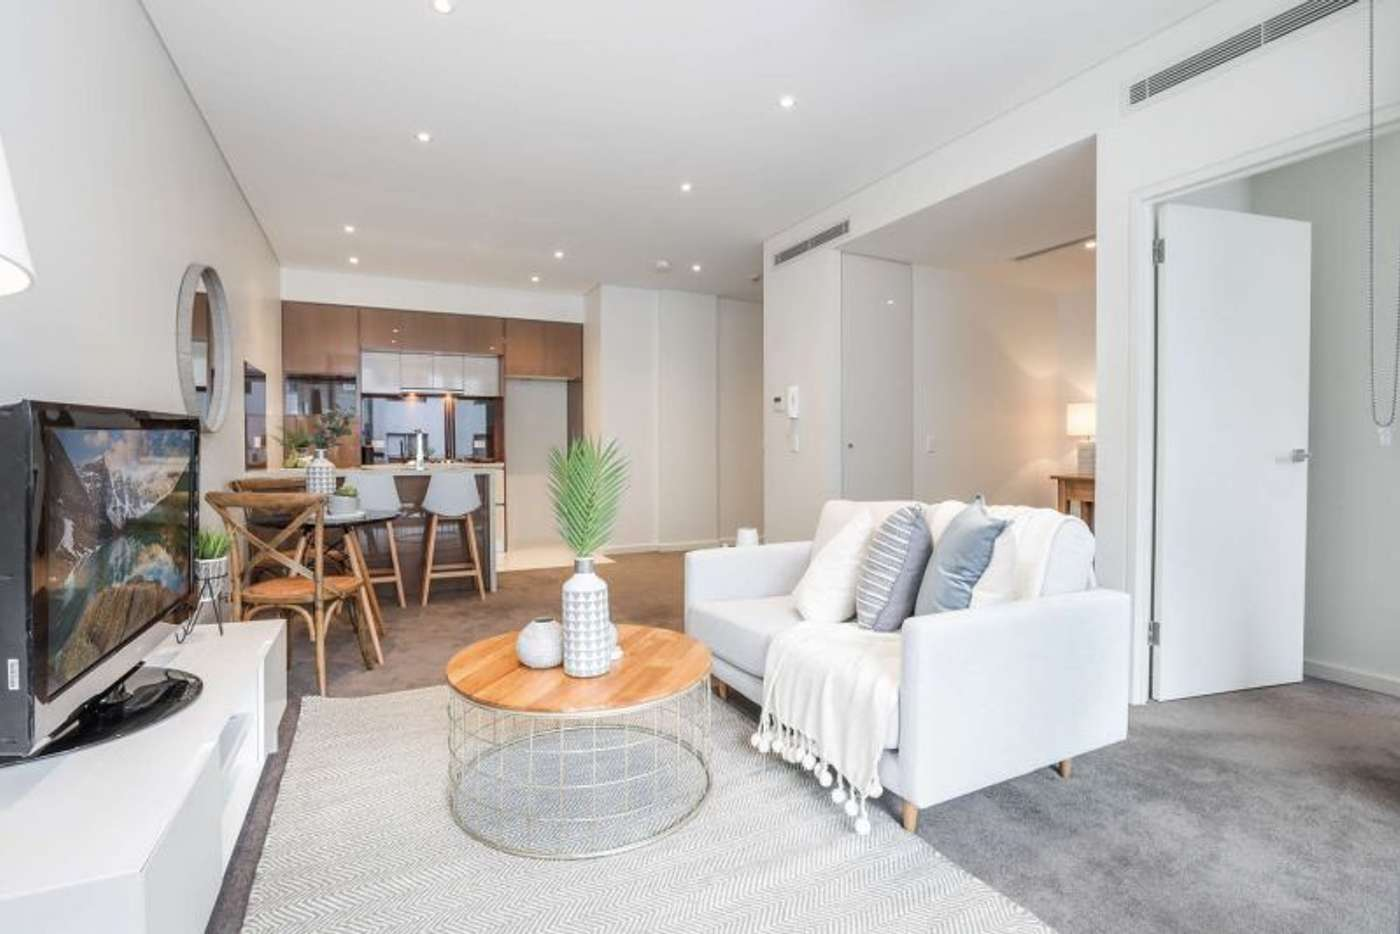 Main view of Homely apartment listing, 504B/7-13 Centennial Ave, Lane Cove North NSW 2066